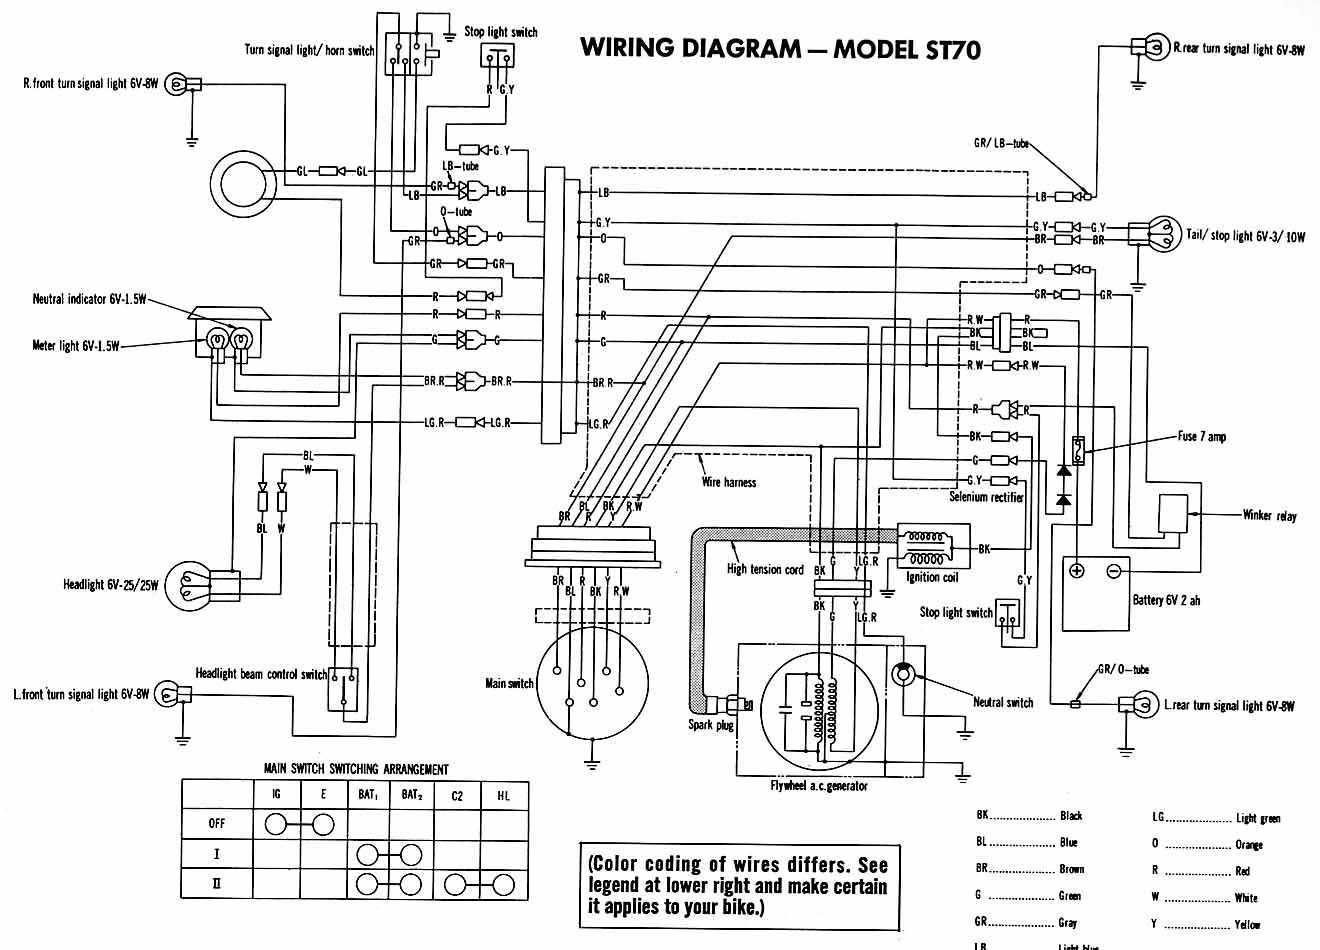 Wiring Diagram For Motorcycle 2004 4l60e Honda Cr V Fuse Box Free Engine Image